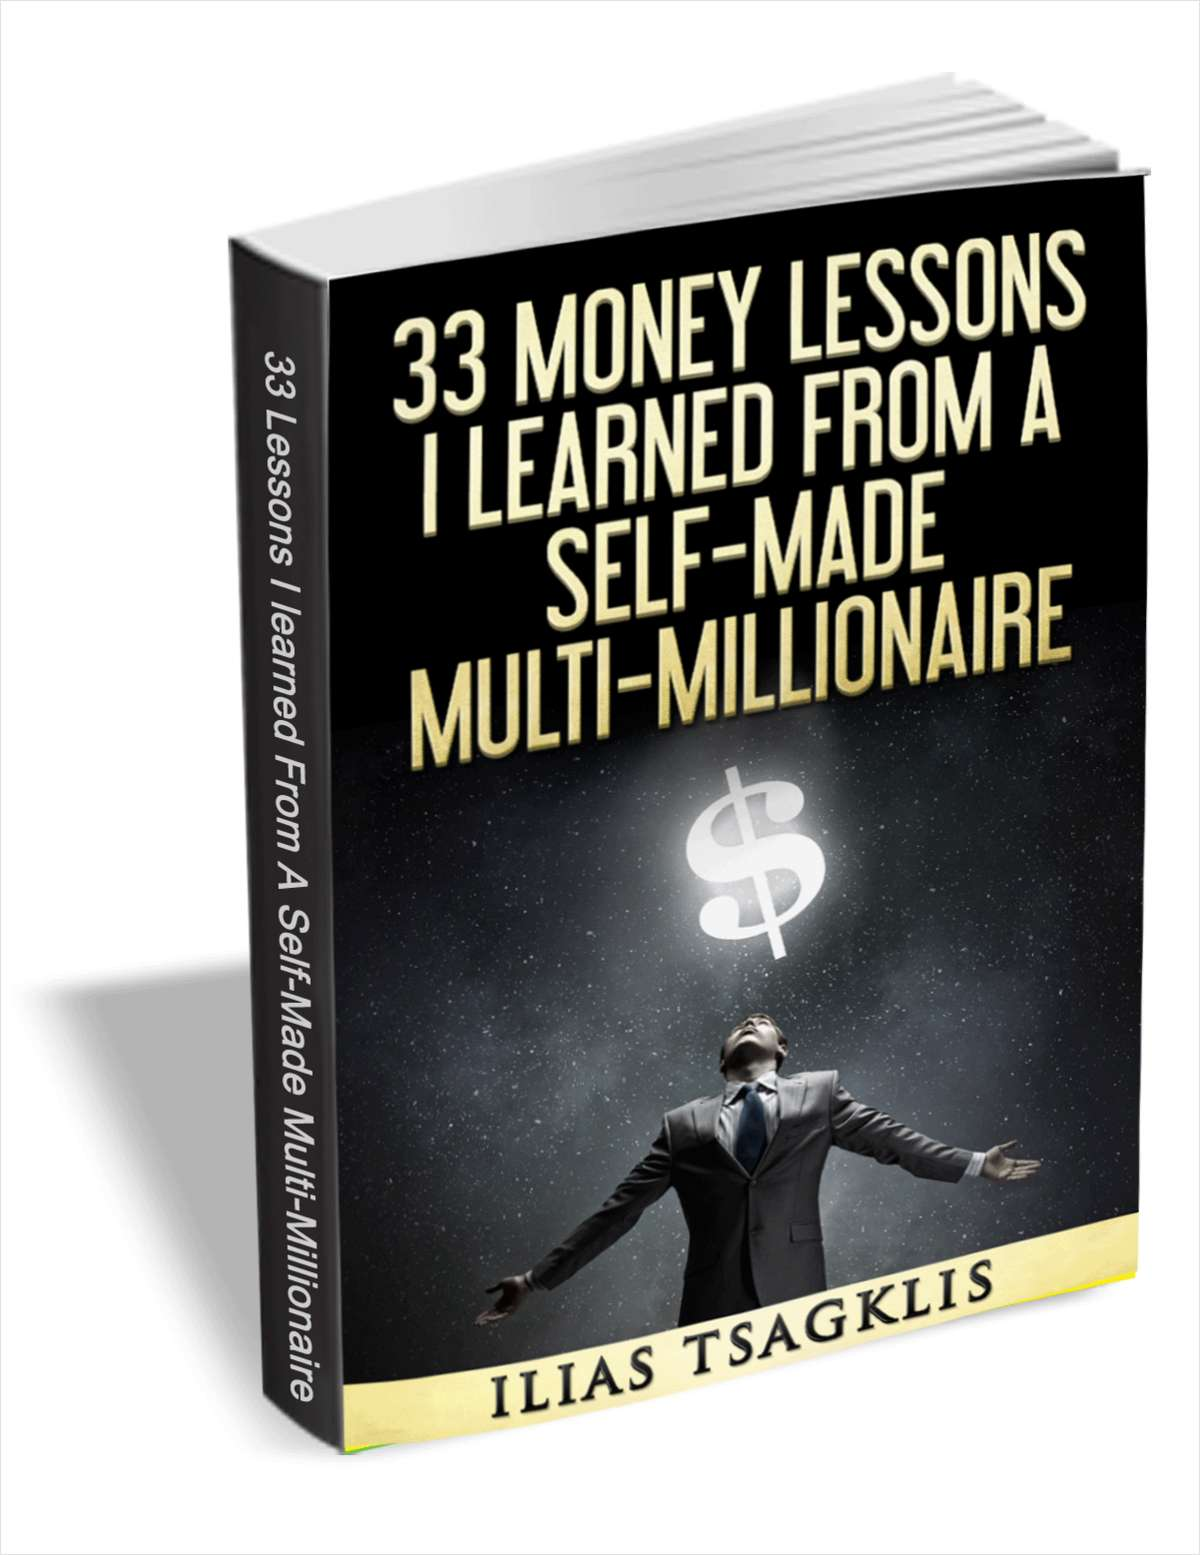 33 Money Lessons I Learned from a Self-Made Multi-Millionaire